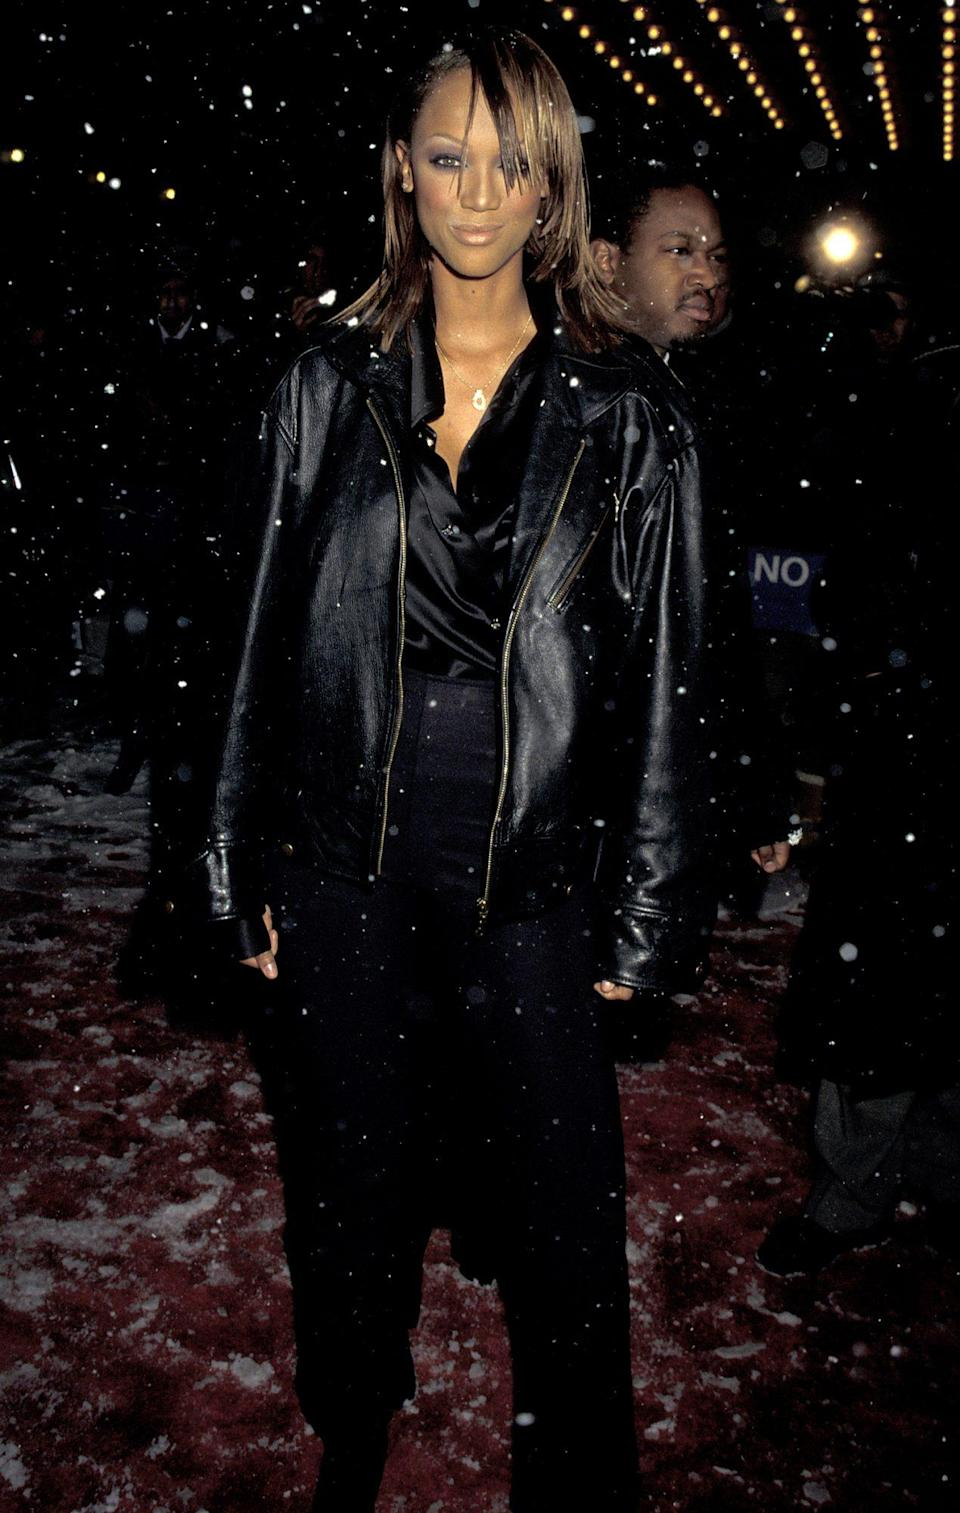 <p>Feast your eyes on the perfect smize — only slightly obscured by '90's side bangs. The supermodel graced the red carpet in an edgy black leather jacket and what looks to be a purple smokey eye. </p>